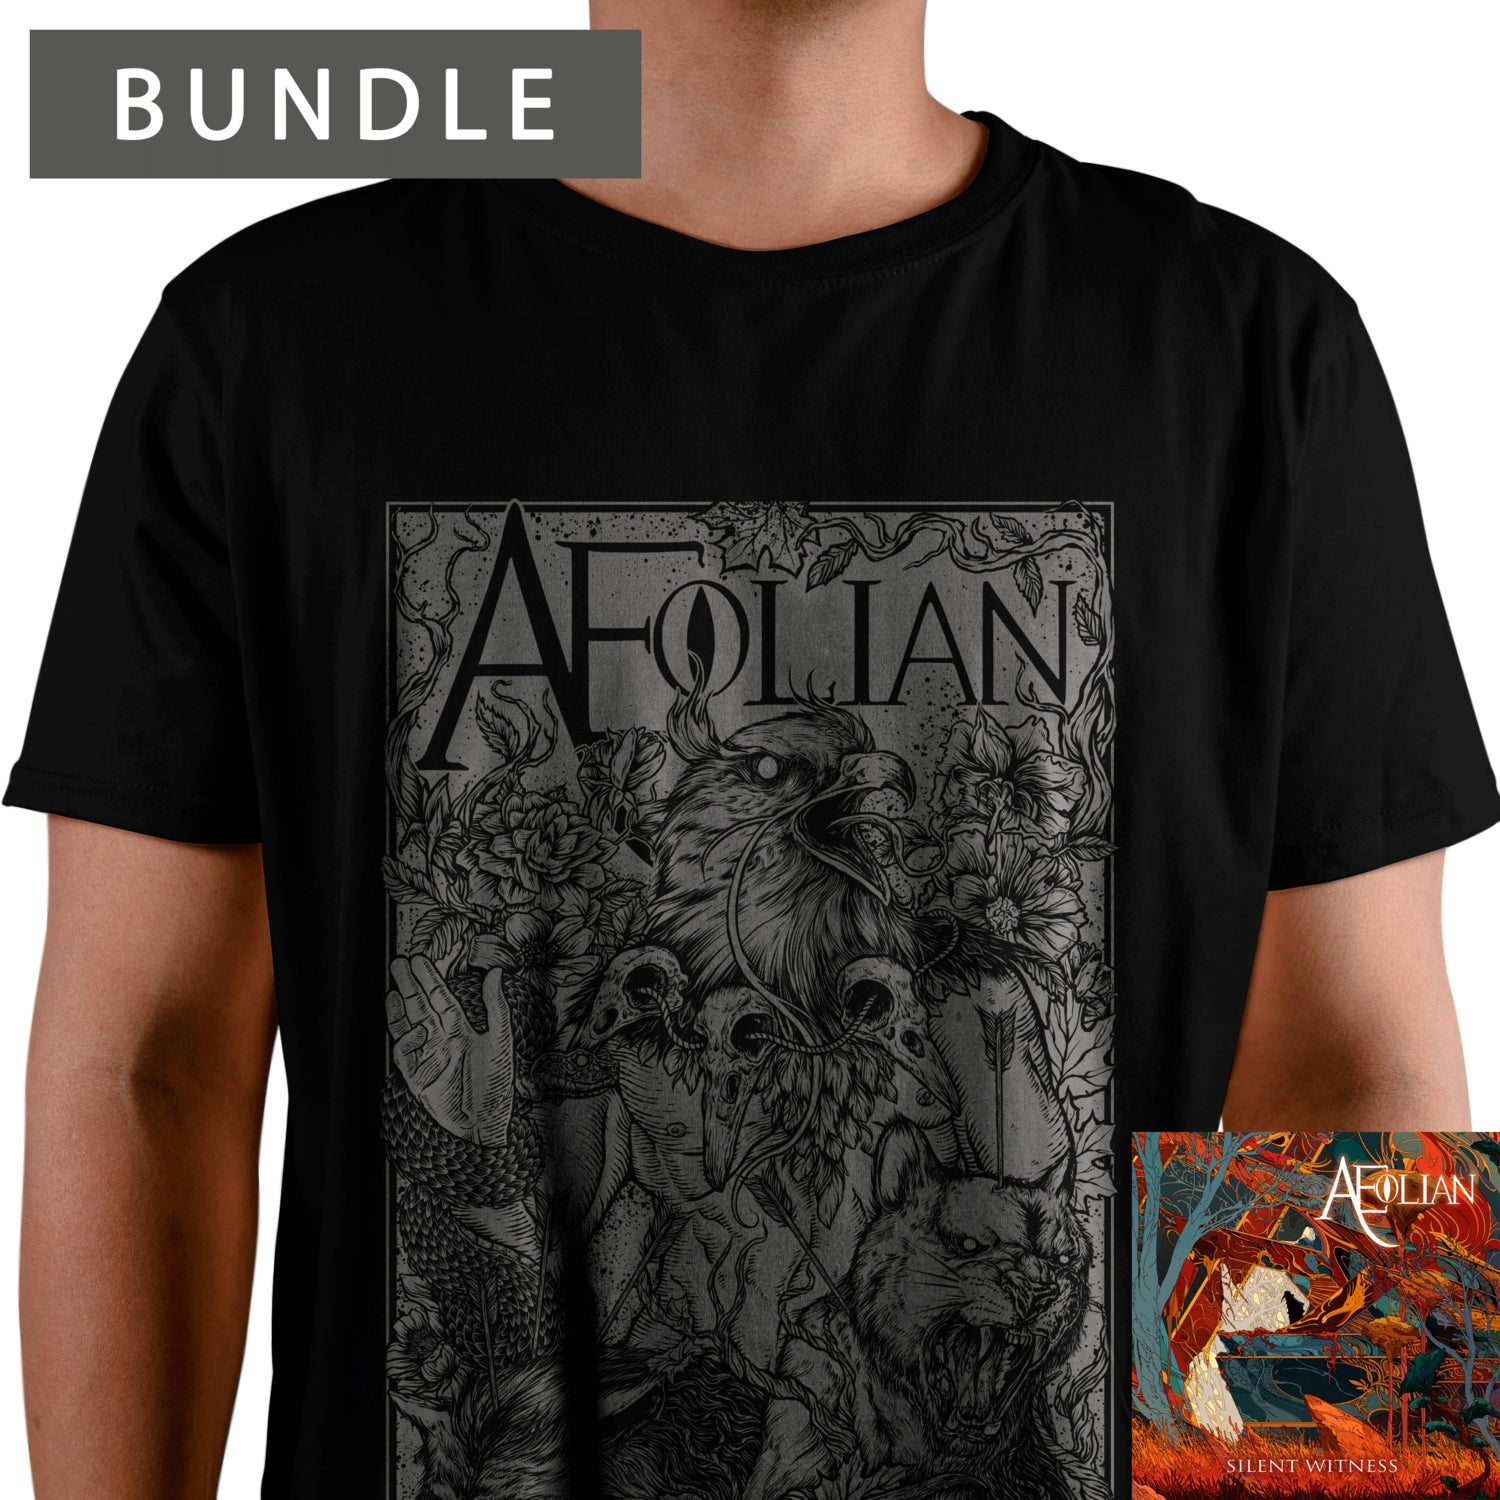 Aeolian - Silent Witness T-shirt + CD bundle